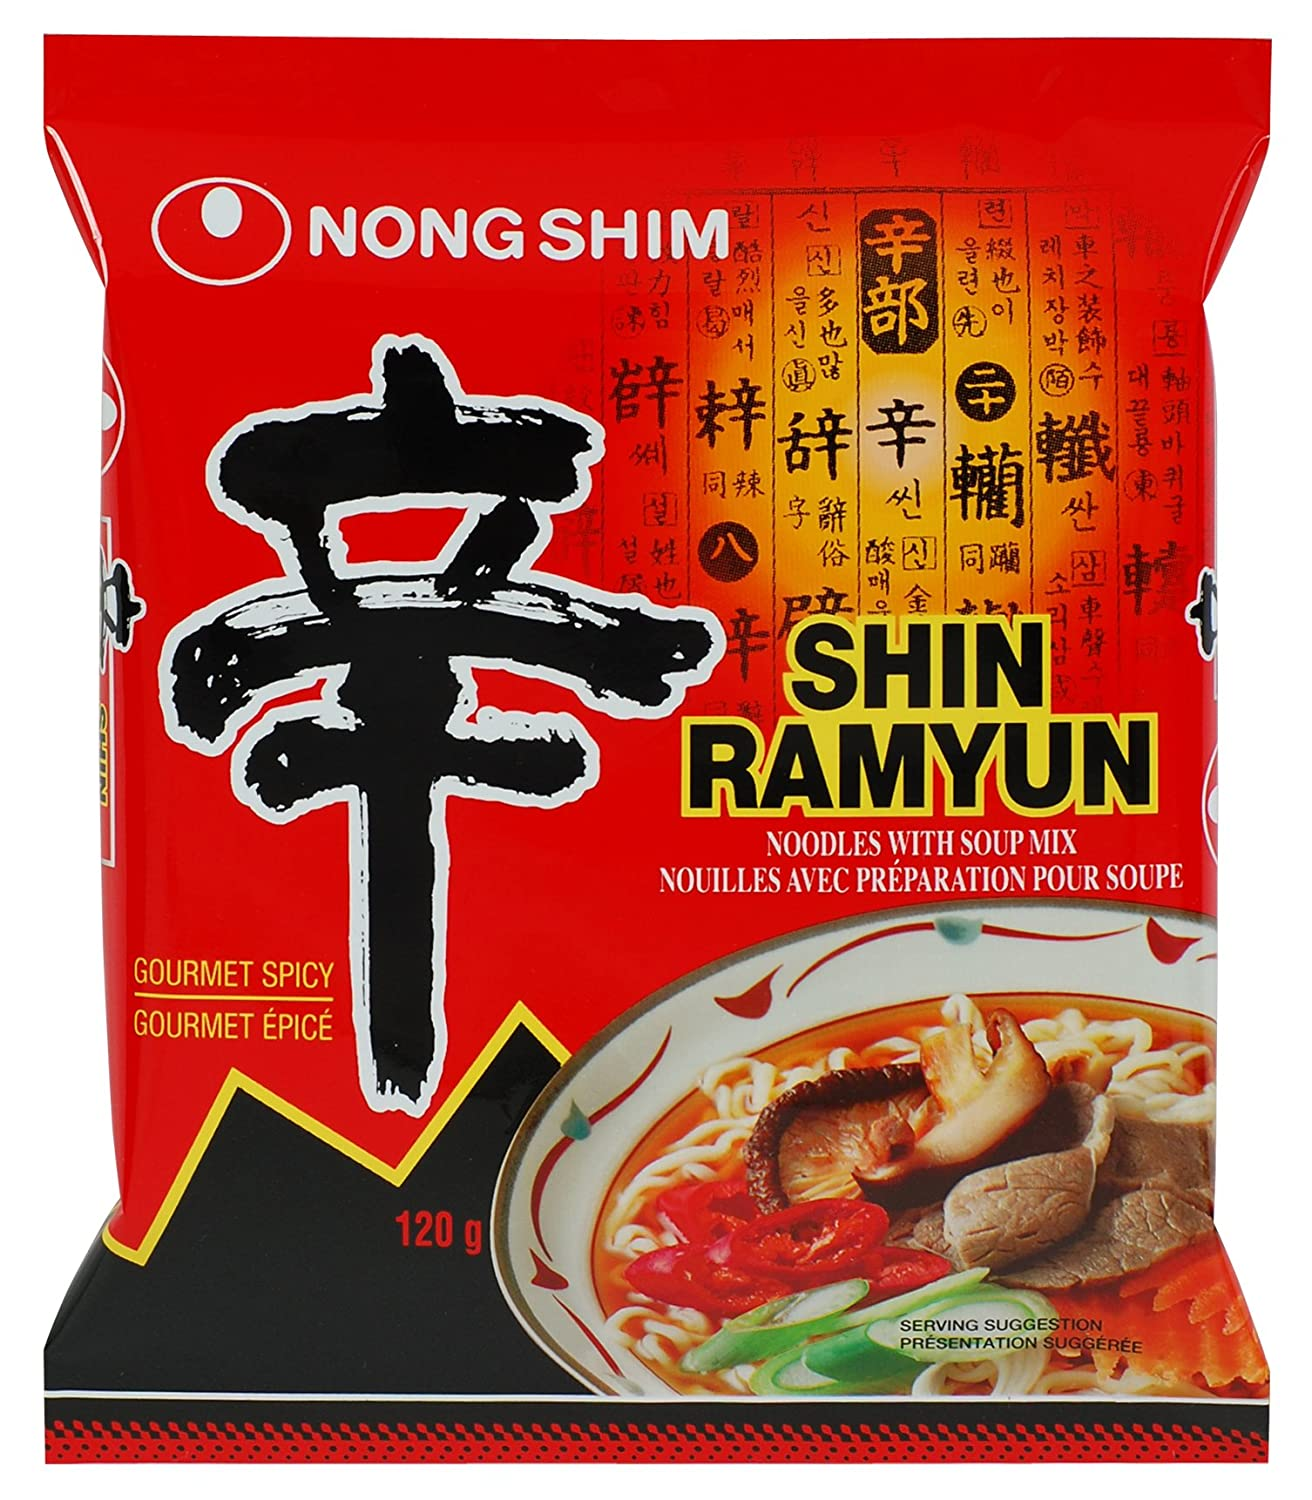 Nong Shim Shin Ramyun Noodle Jacksonville Mall Soup Spicy of Super sale period limited 5 4.2oz. - pack